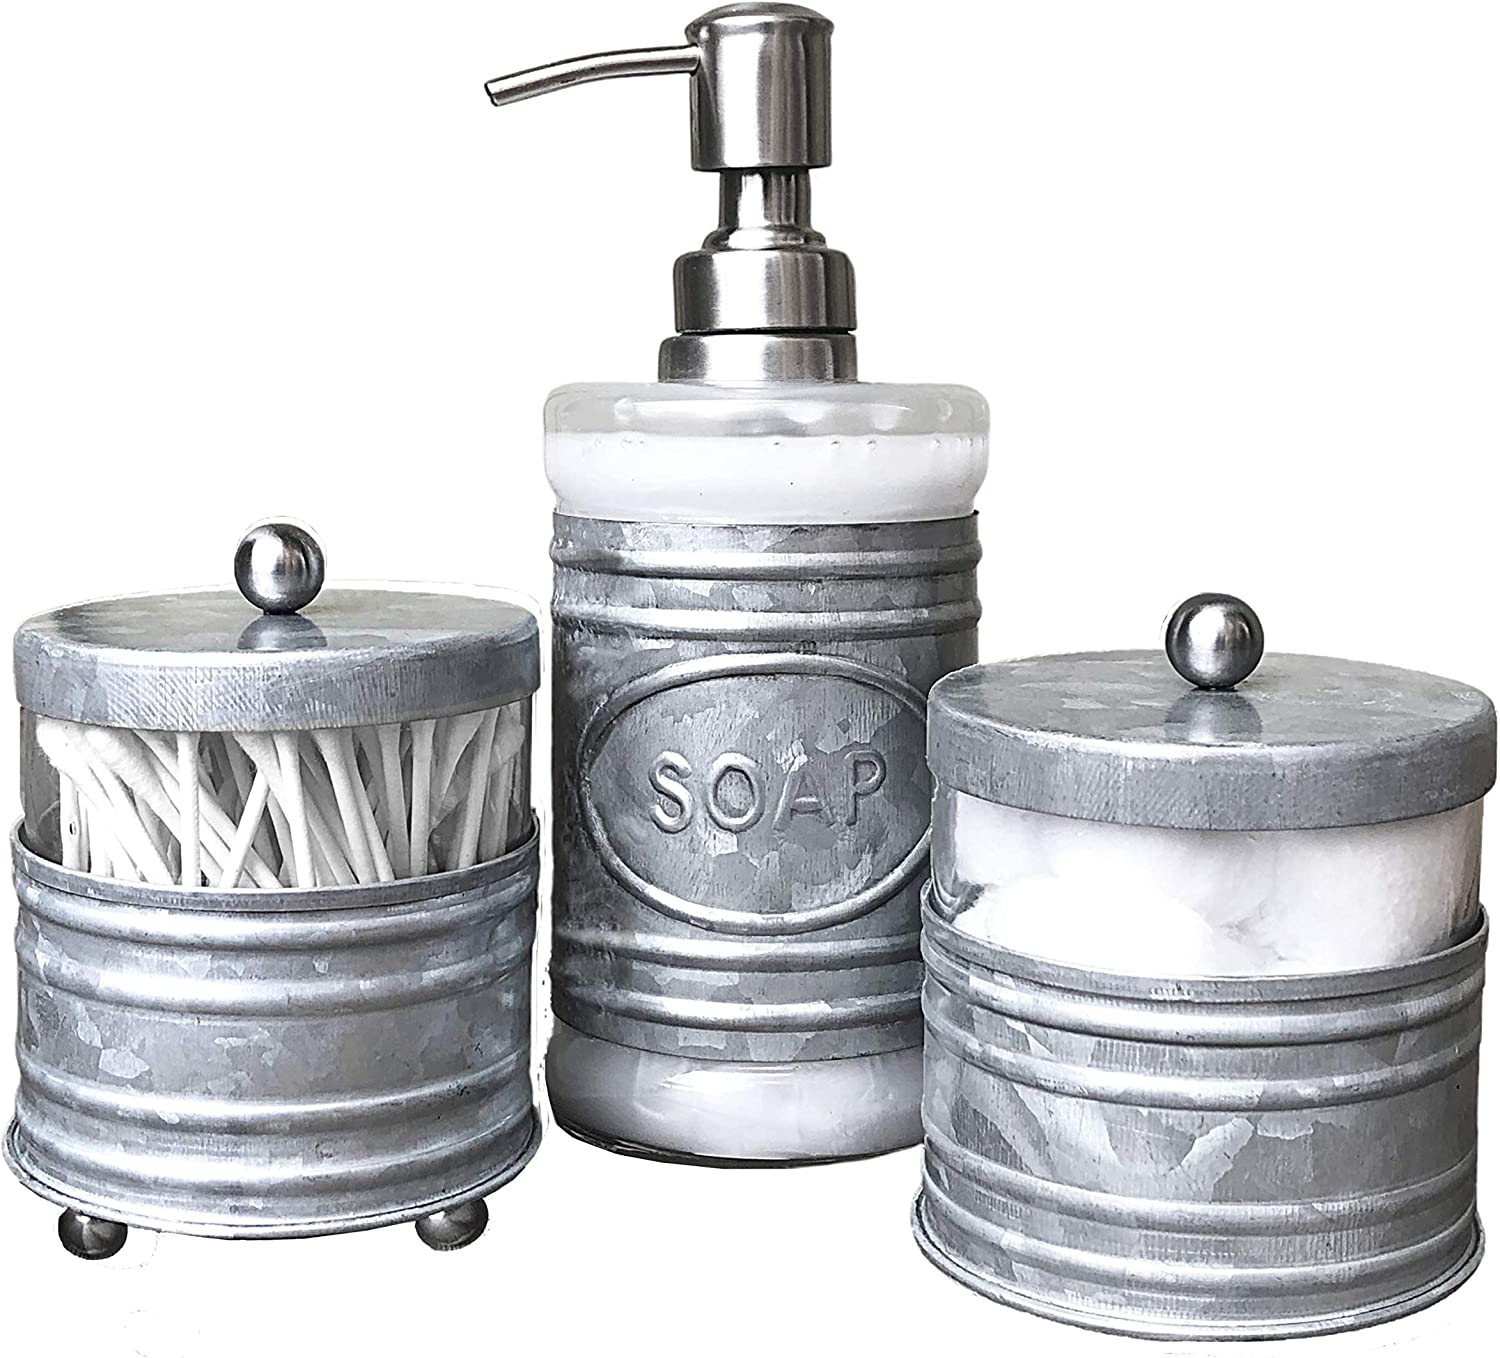 Autumn Alley Adorable 3 Piece Farmhouse Bathroom Accessory Set for Sink/Vanity with Galvanized Soap Dispenser, Cotton Ball Container with Lid, Qtip Organizer- Galvanized Farmhouse Bathroom Decor